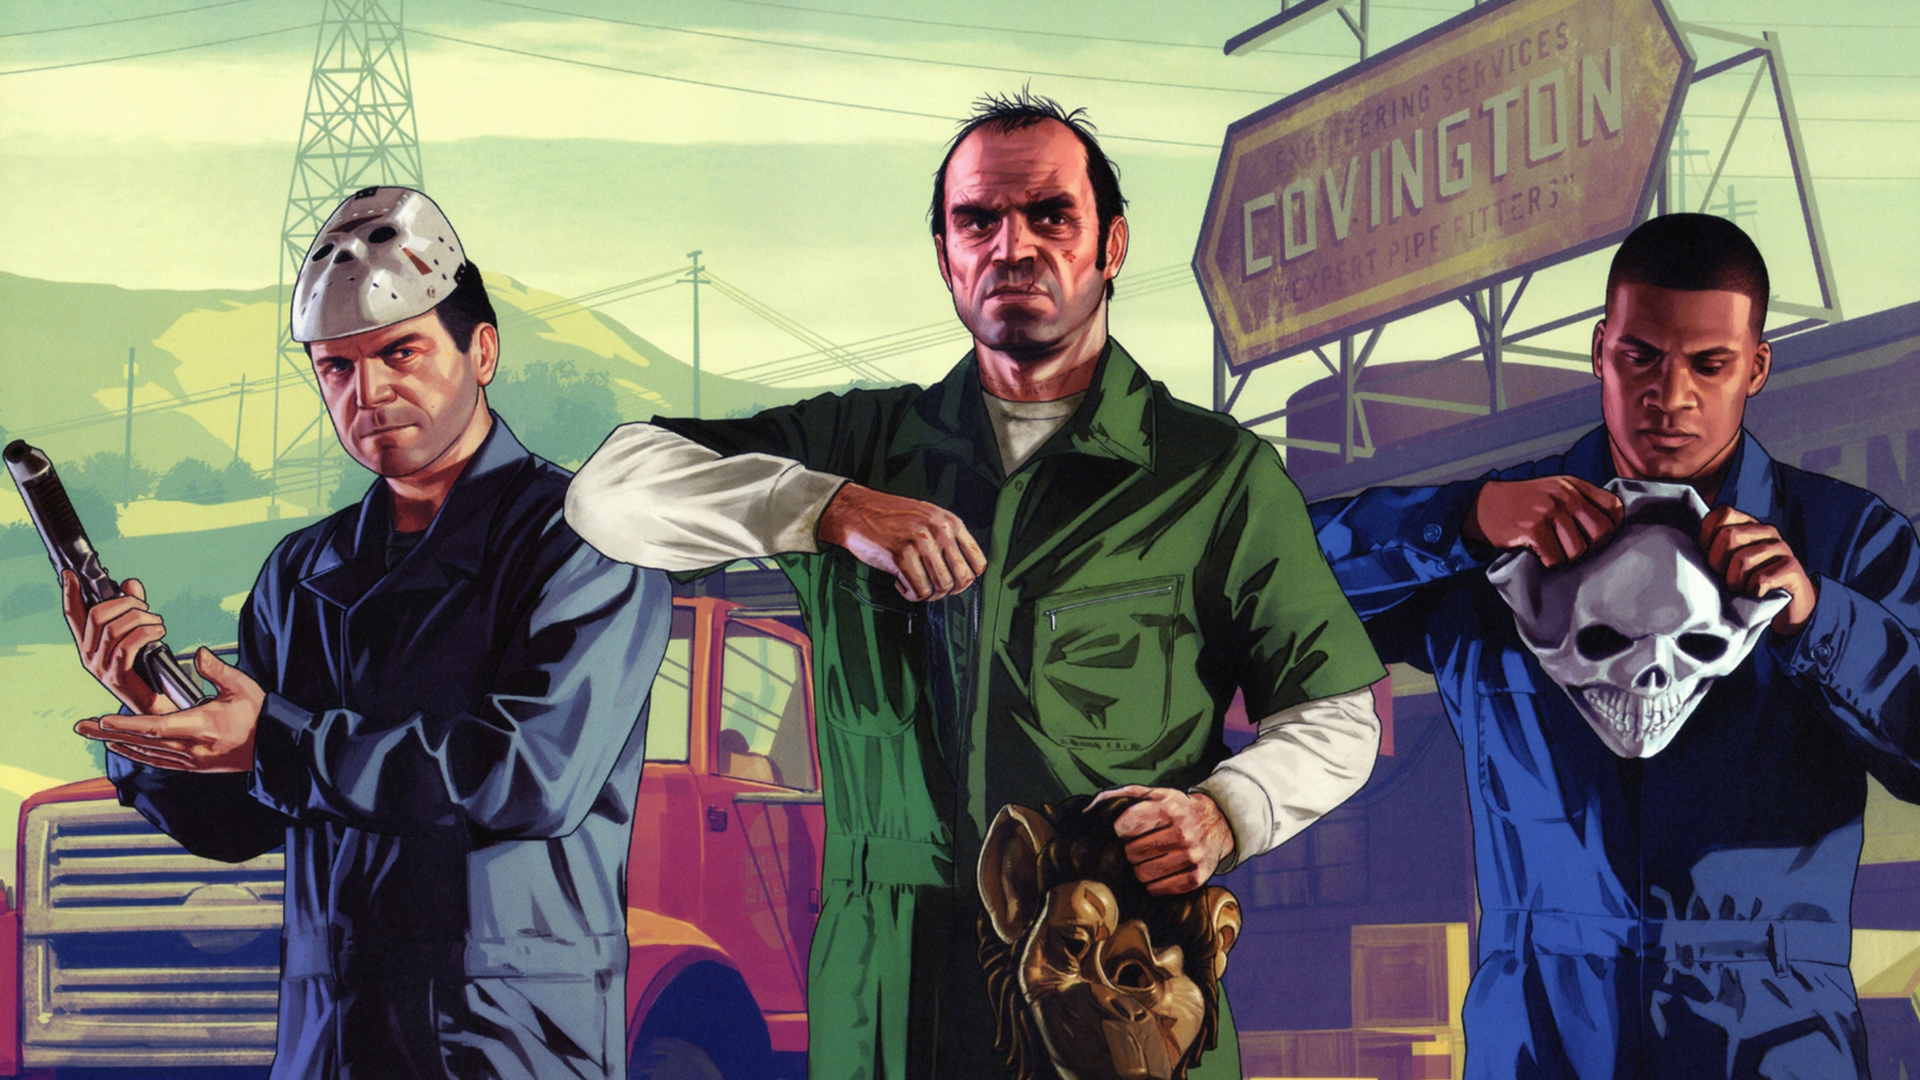 The 11 most WTF missions in Grand Theft Auto's crazy history